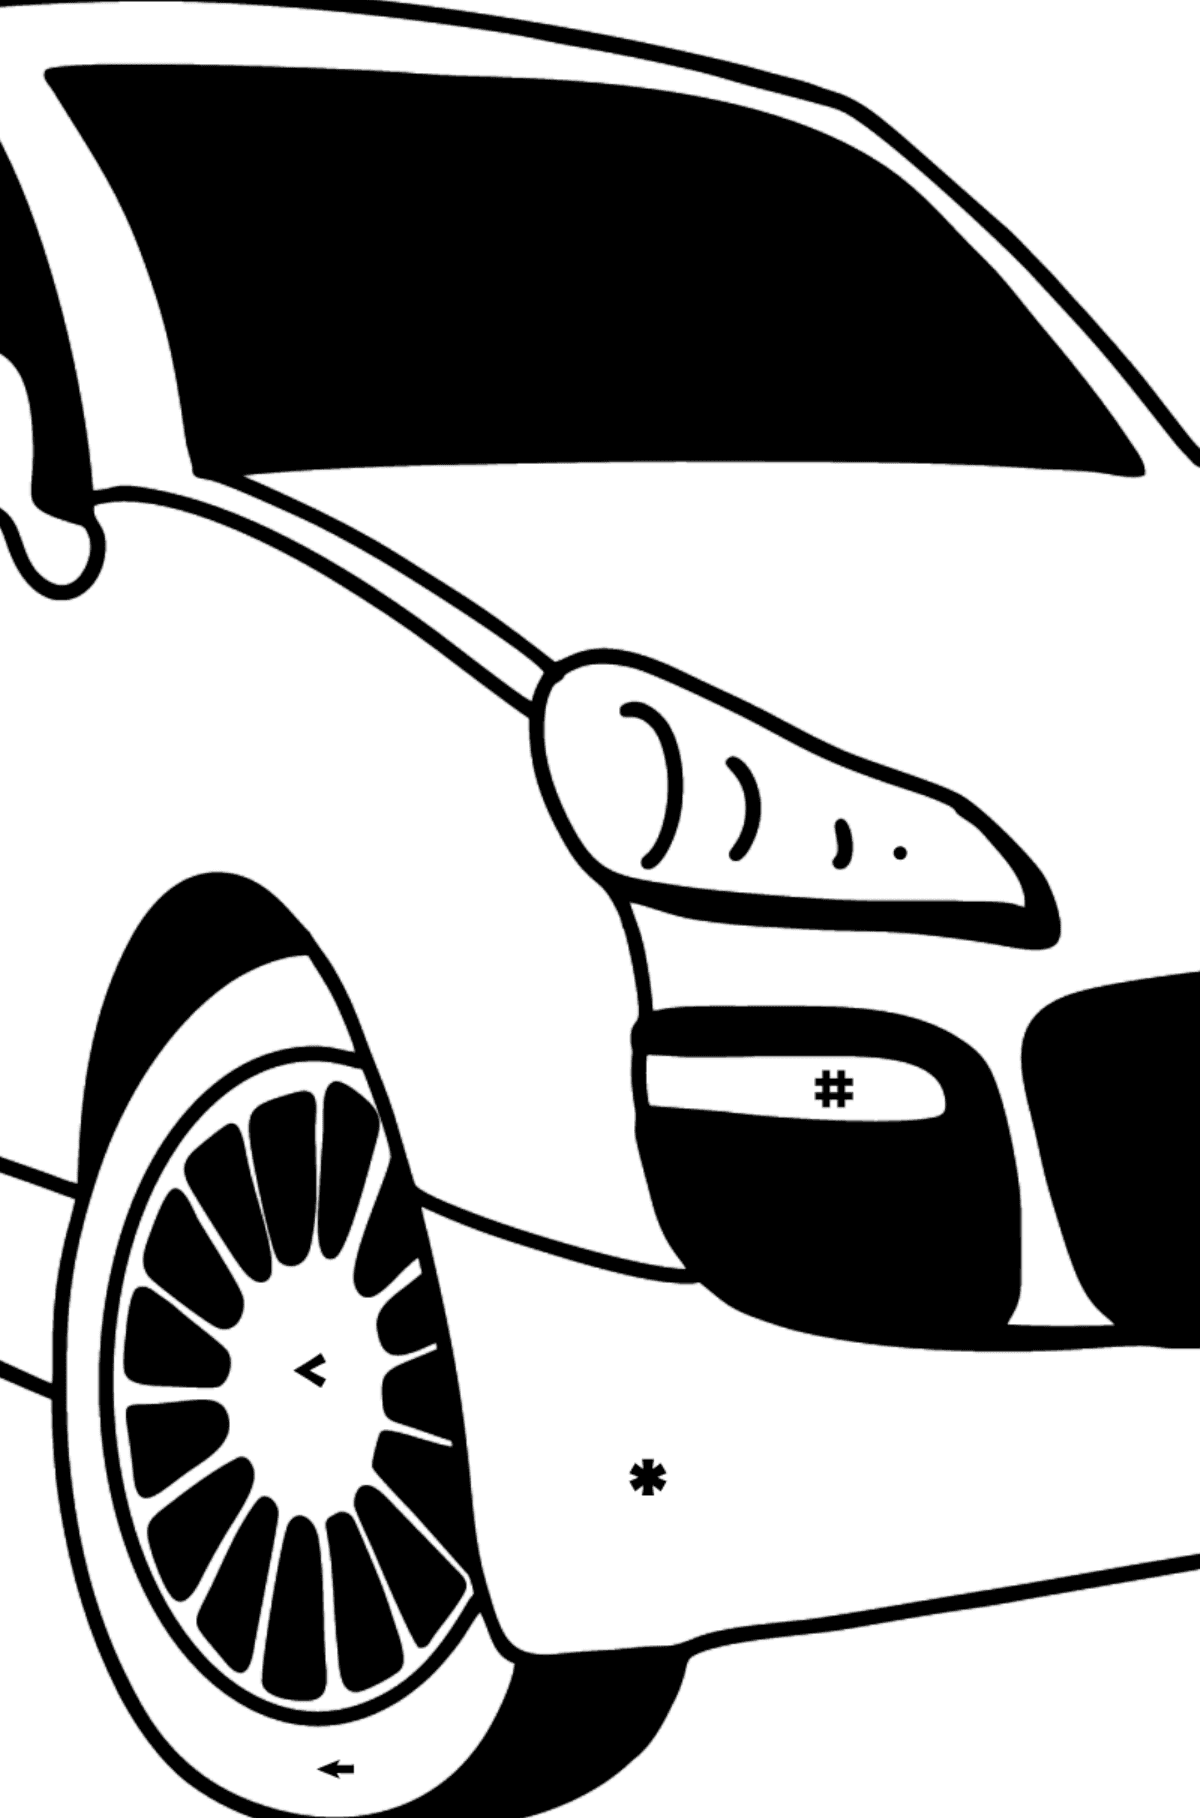 Porsche Cayenne Crossover coloring page - Coloring by Symbols for Kids